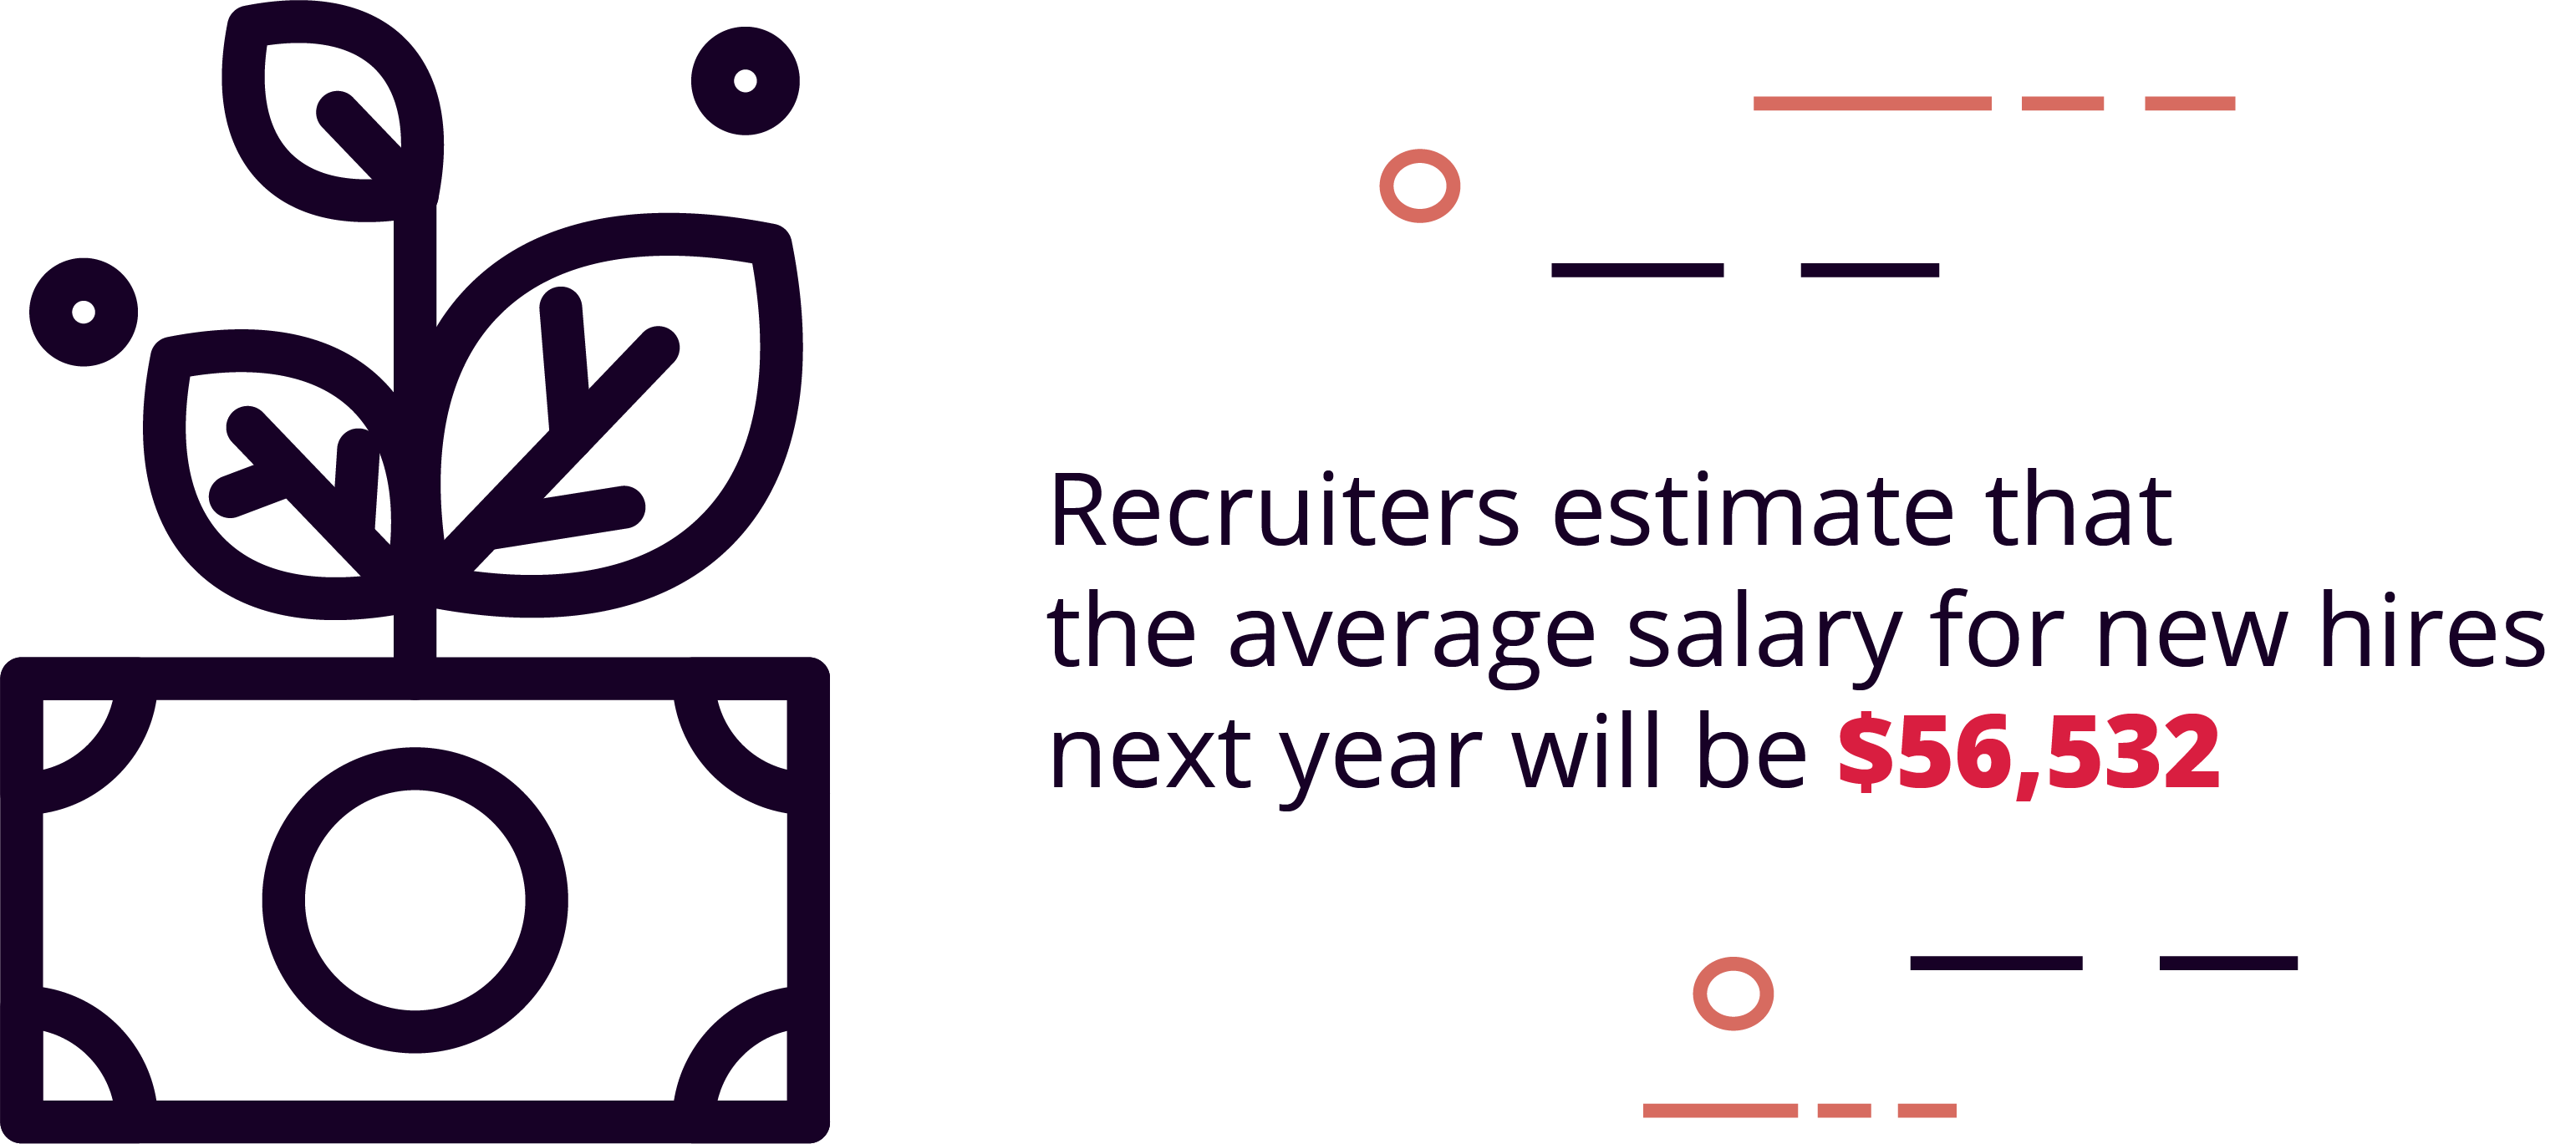 Recruiters estimate that the average salary for new hires next year will be $56,532